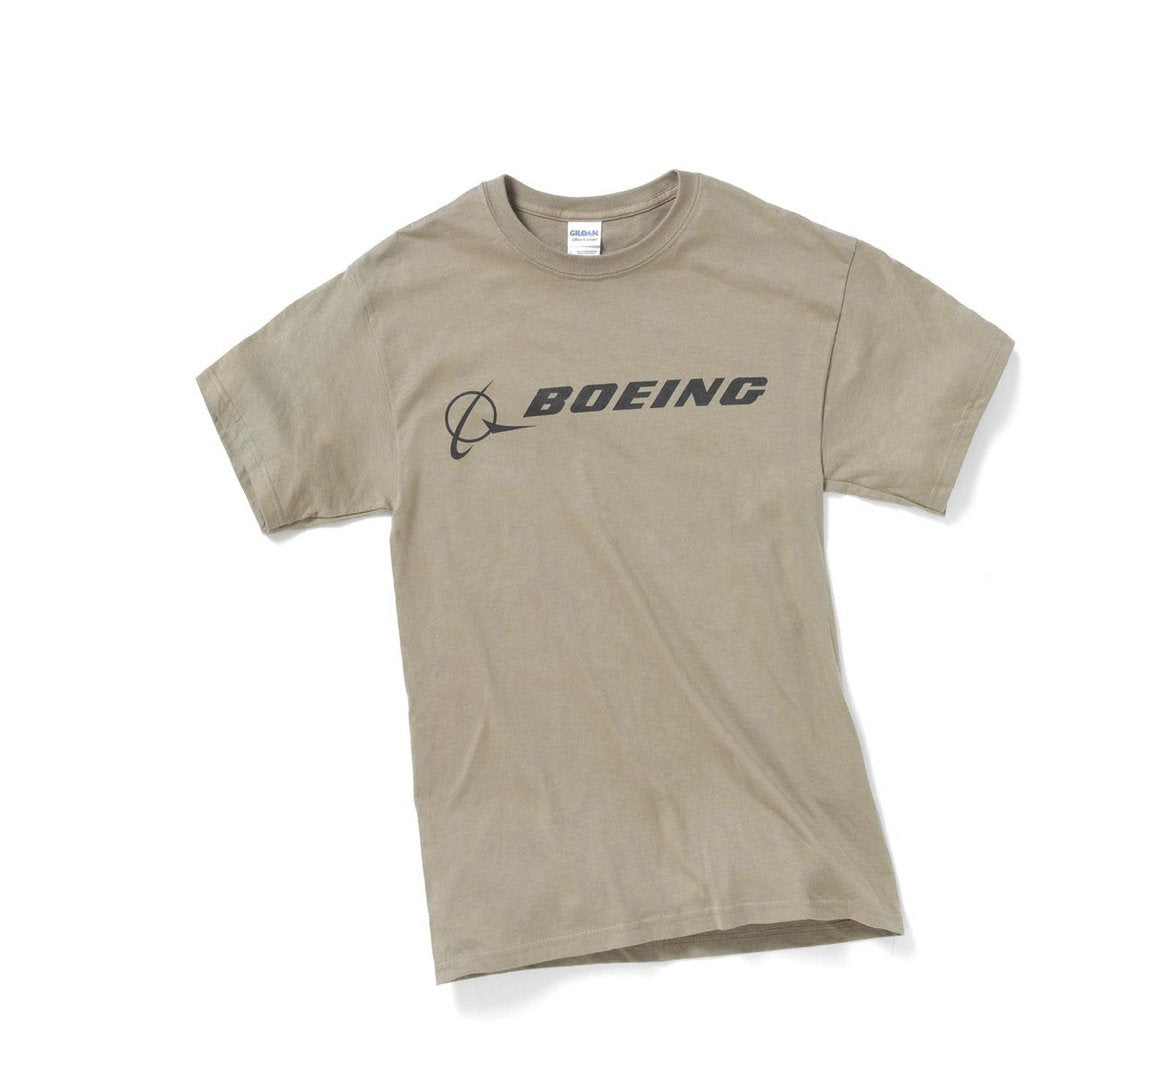 Boeing T- Shirt Color Beige - Sky Crew PTY